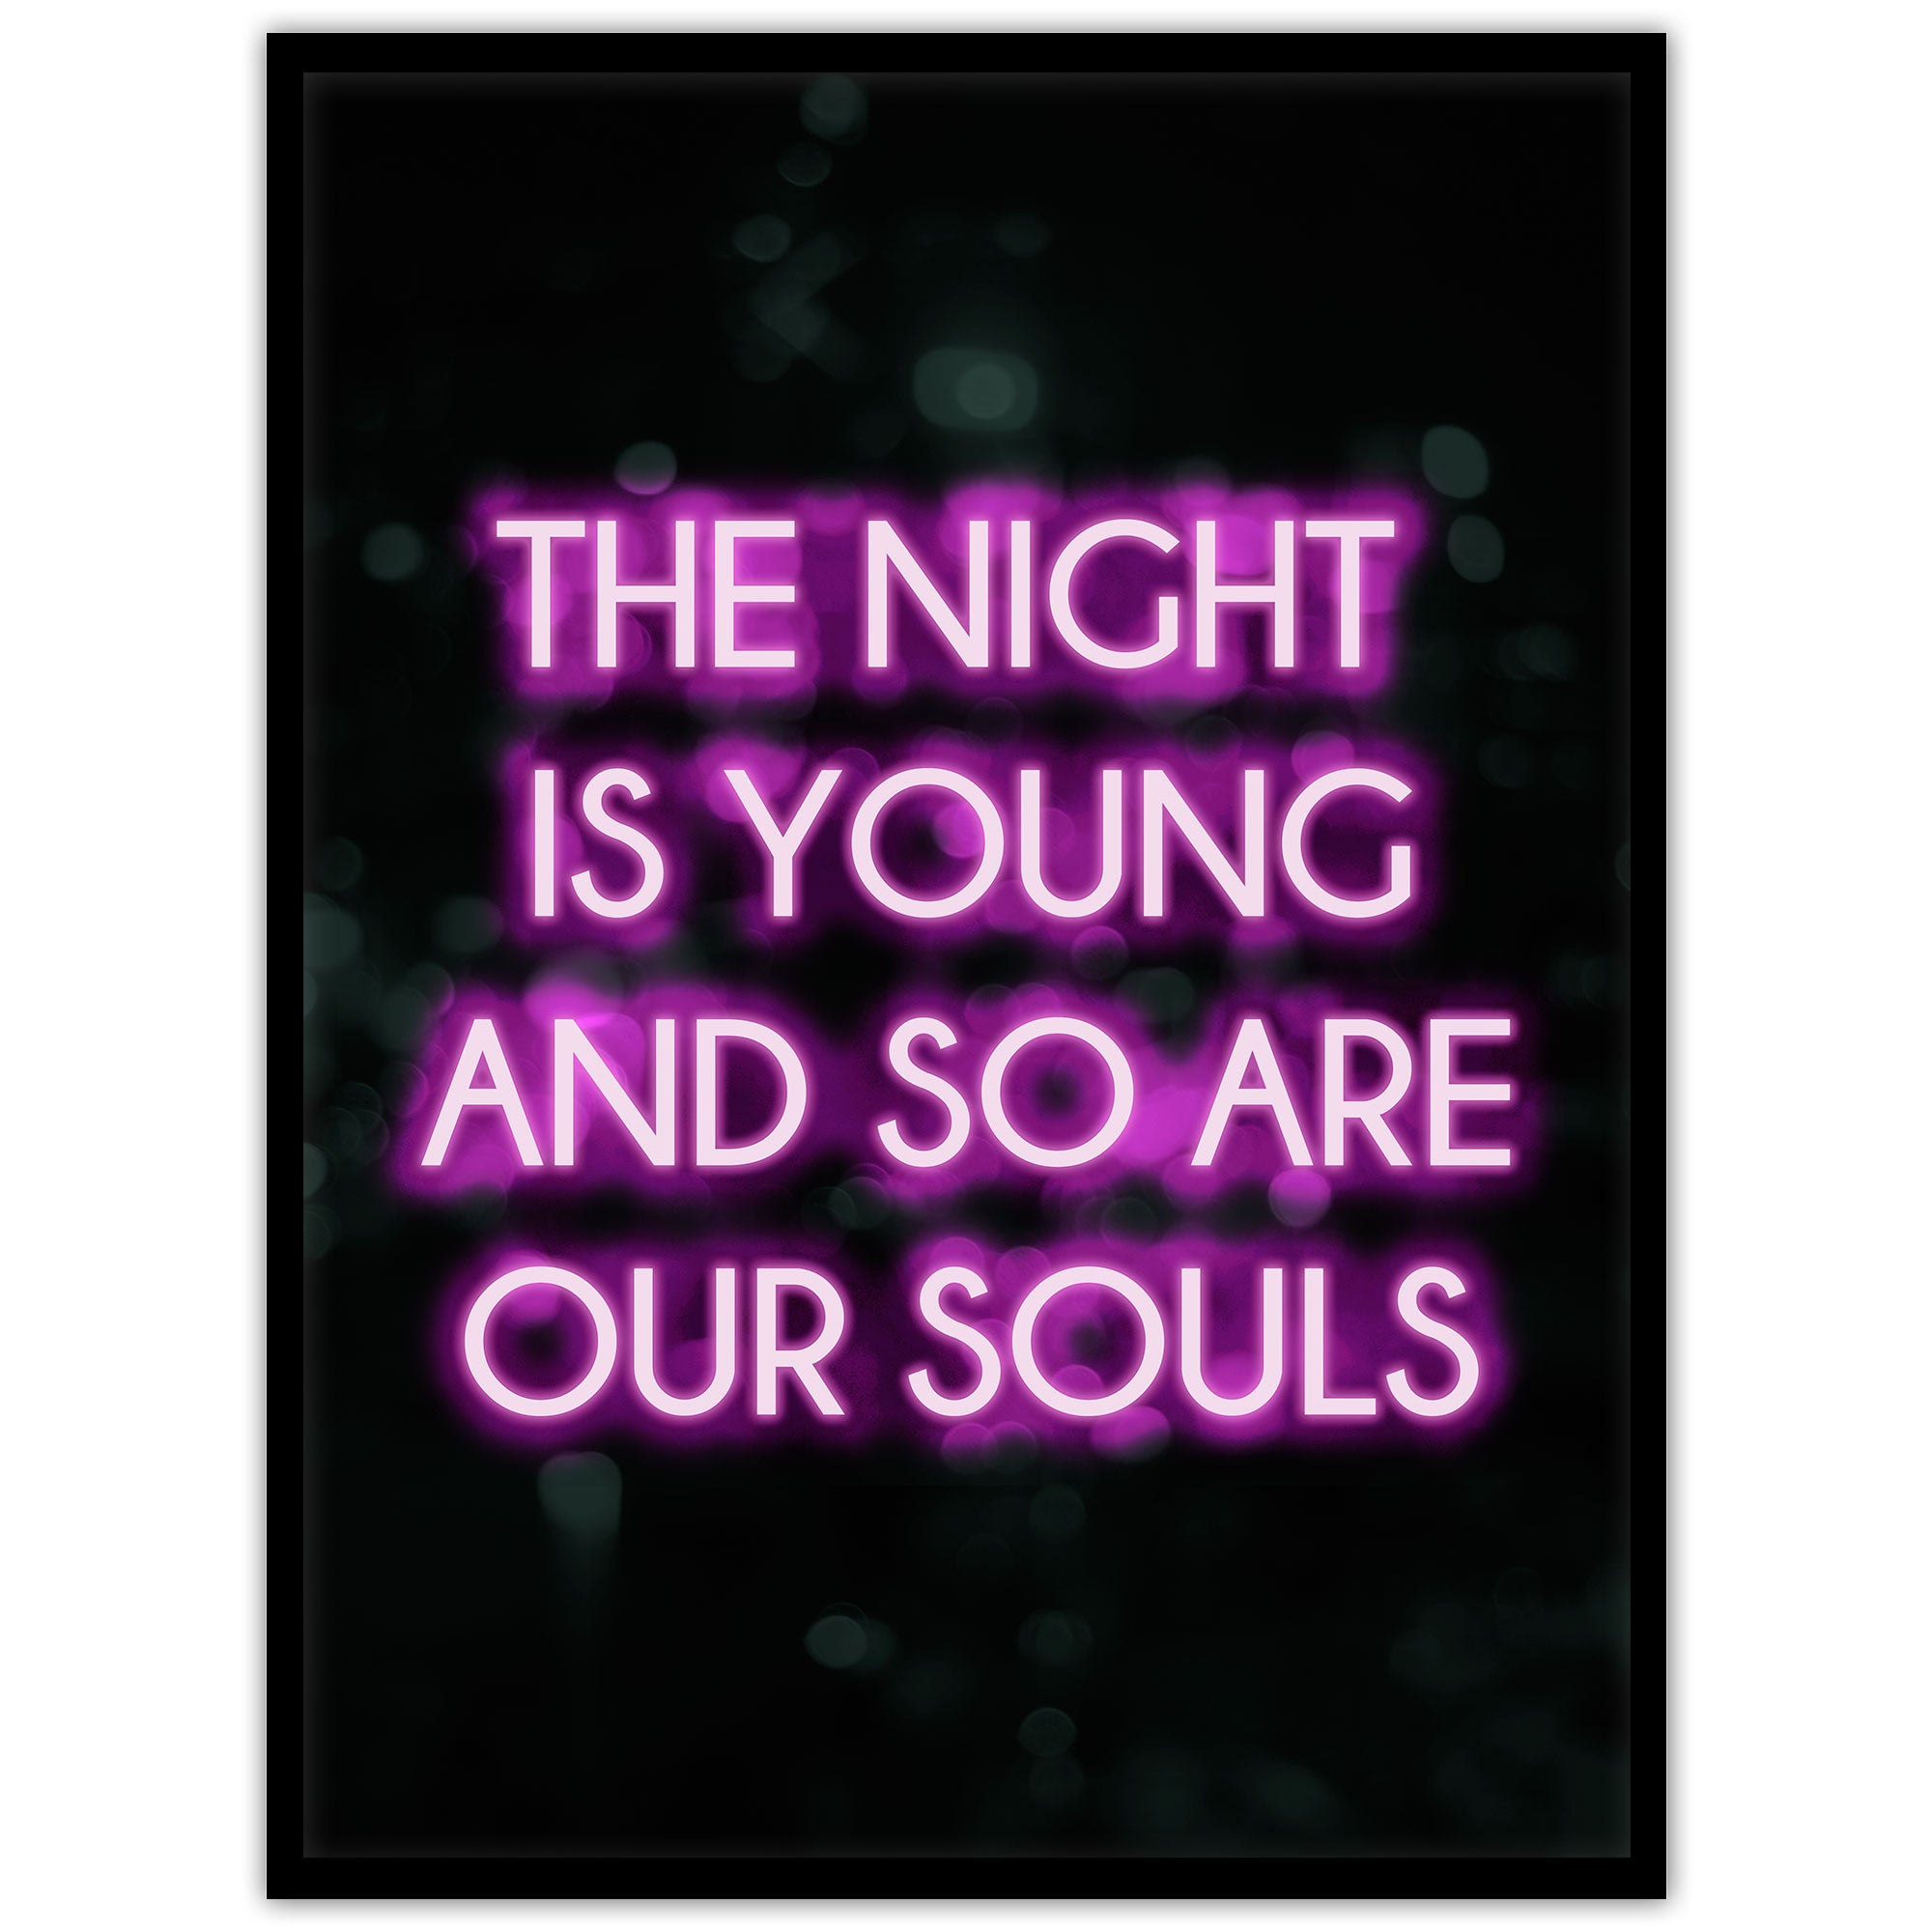 Neon: The night is young - Studio Caro-lines